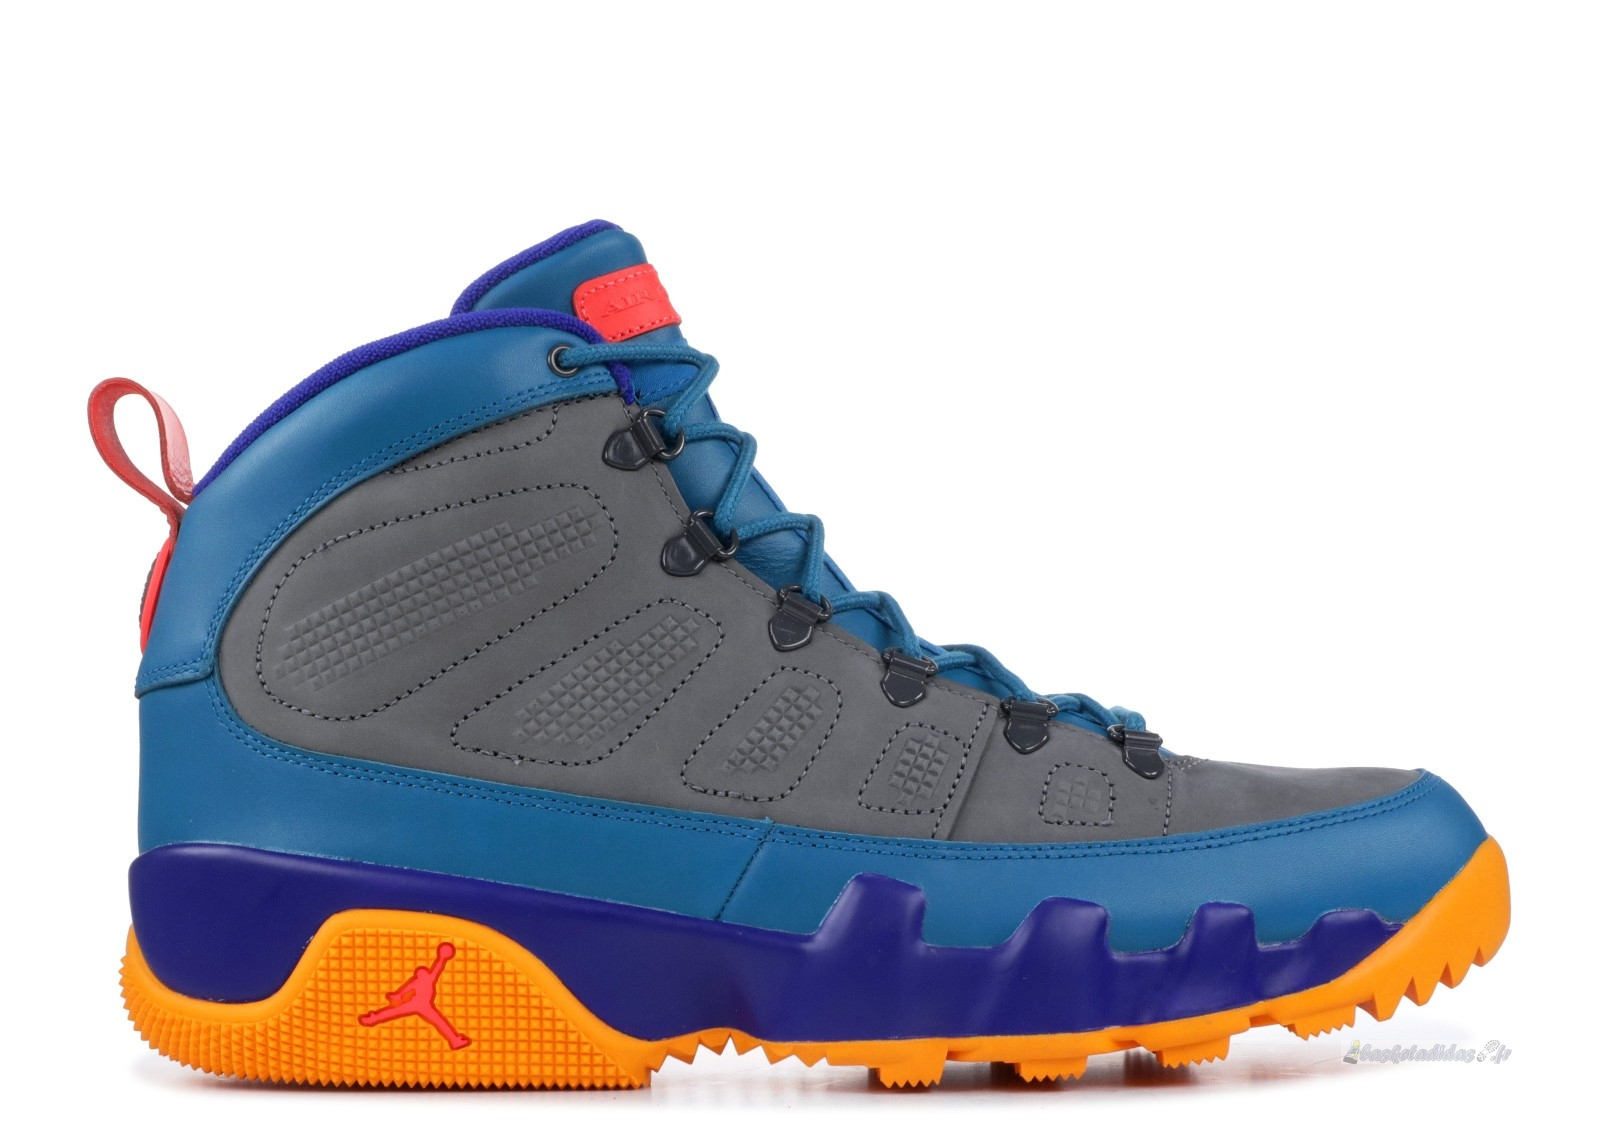 Chaussure de Basket Air Jordan 9 Retro Boot Nrg Bleu Orange (ar4491-300)